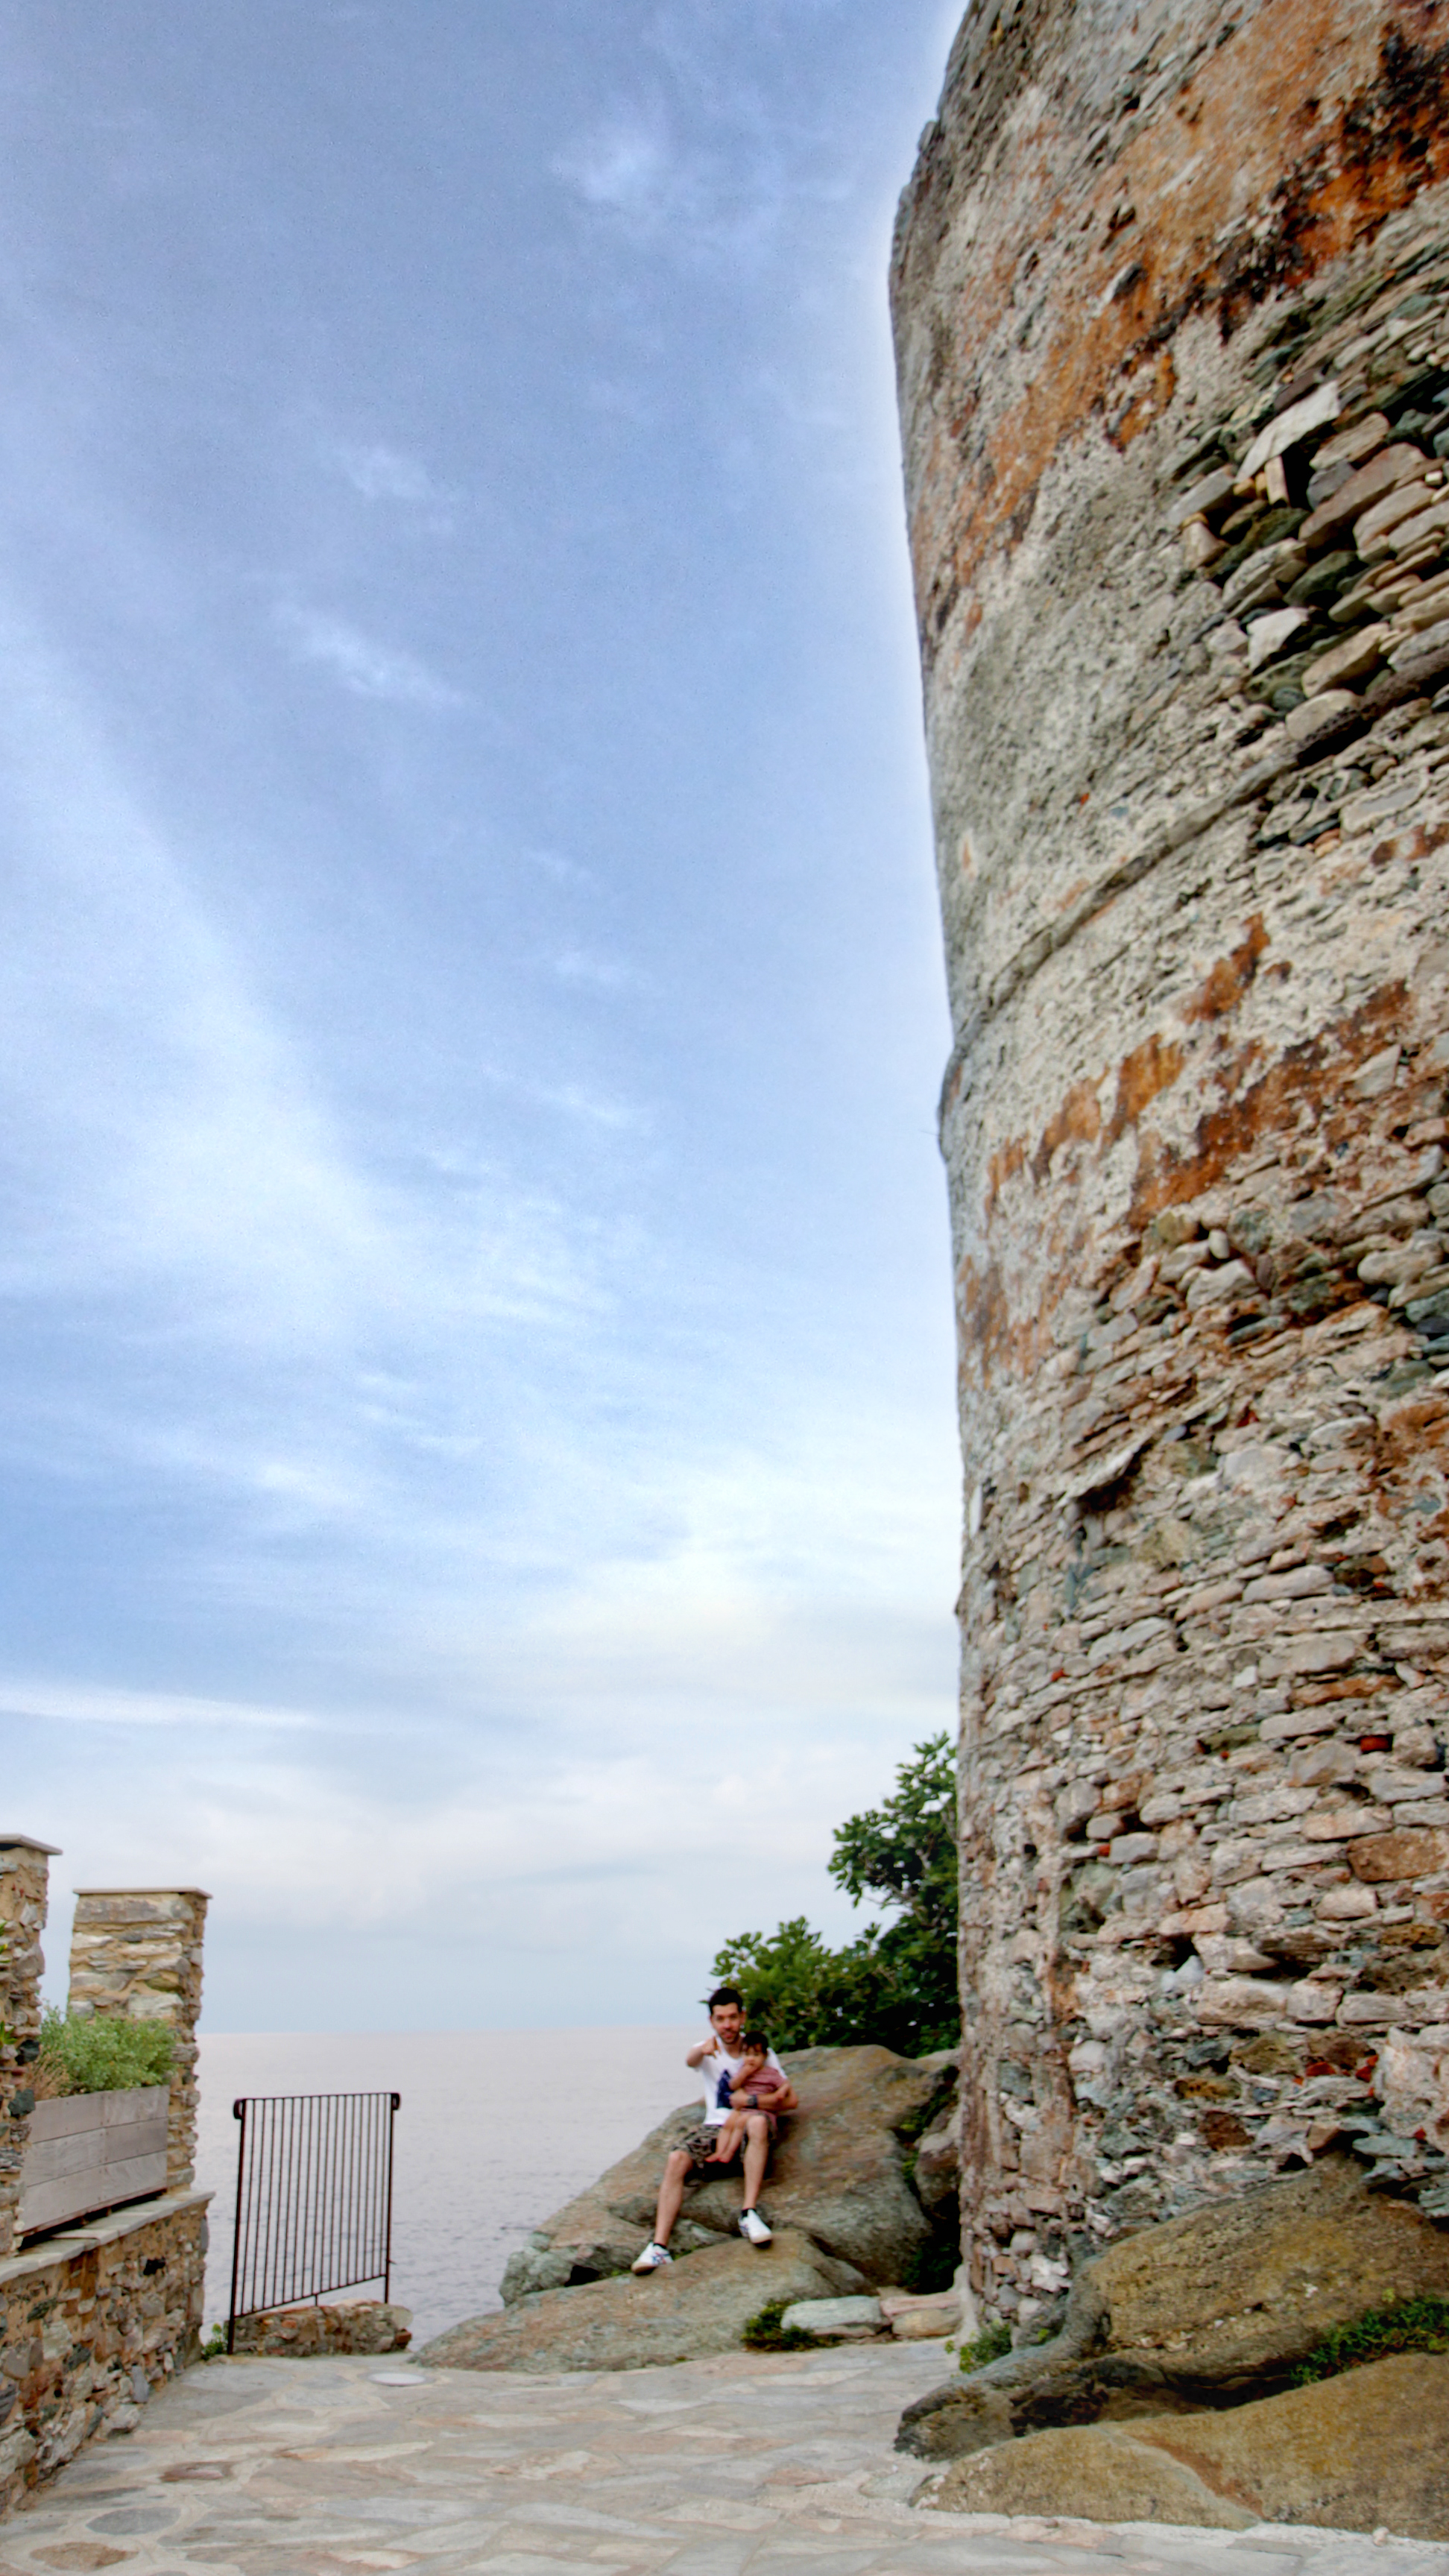 Beside a Genoese Tower at the harbour in Erbalunga